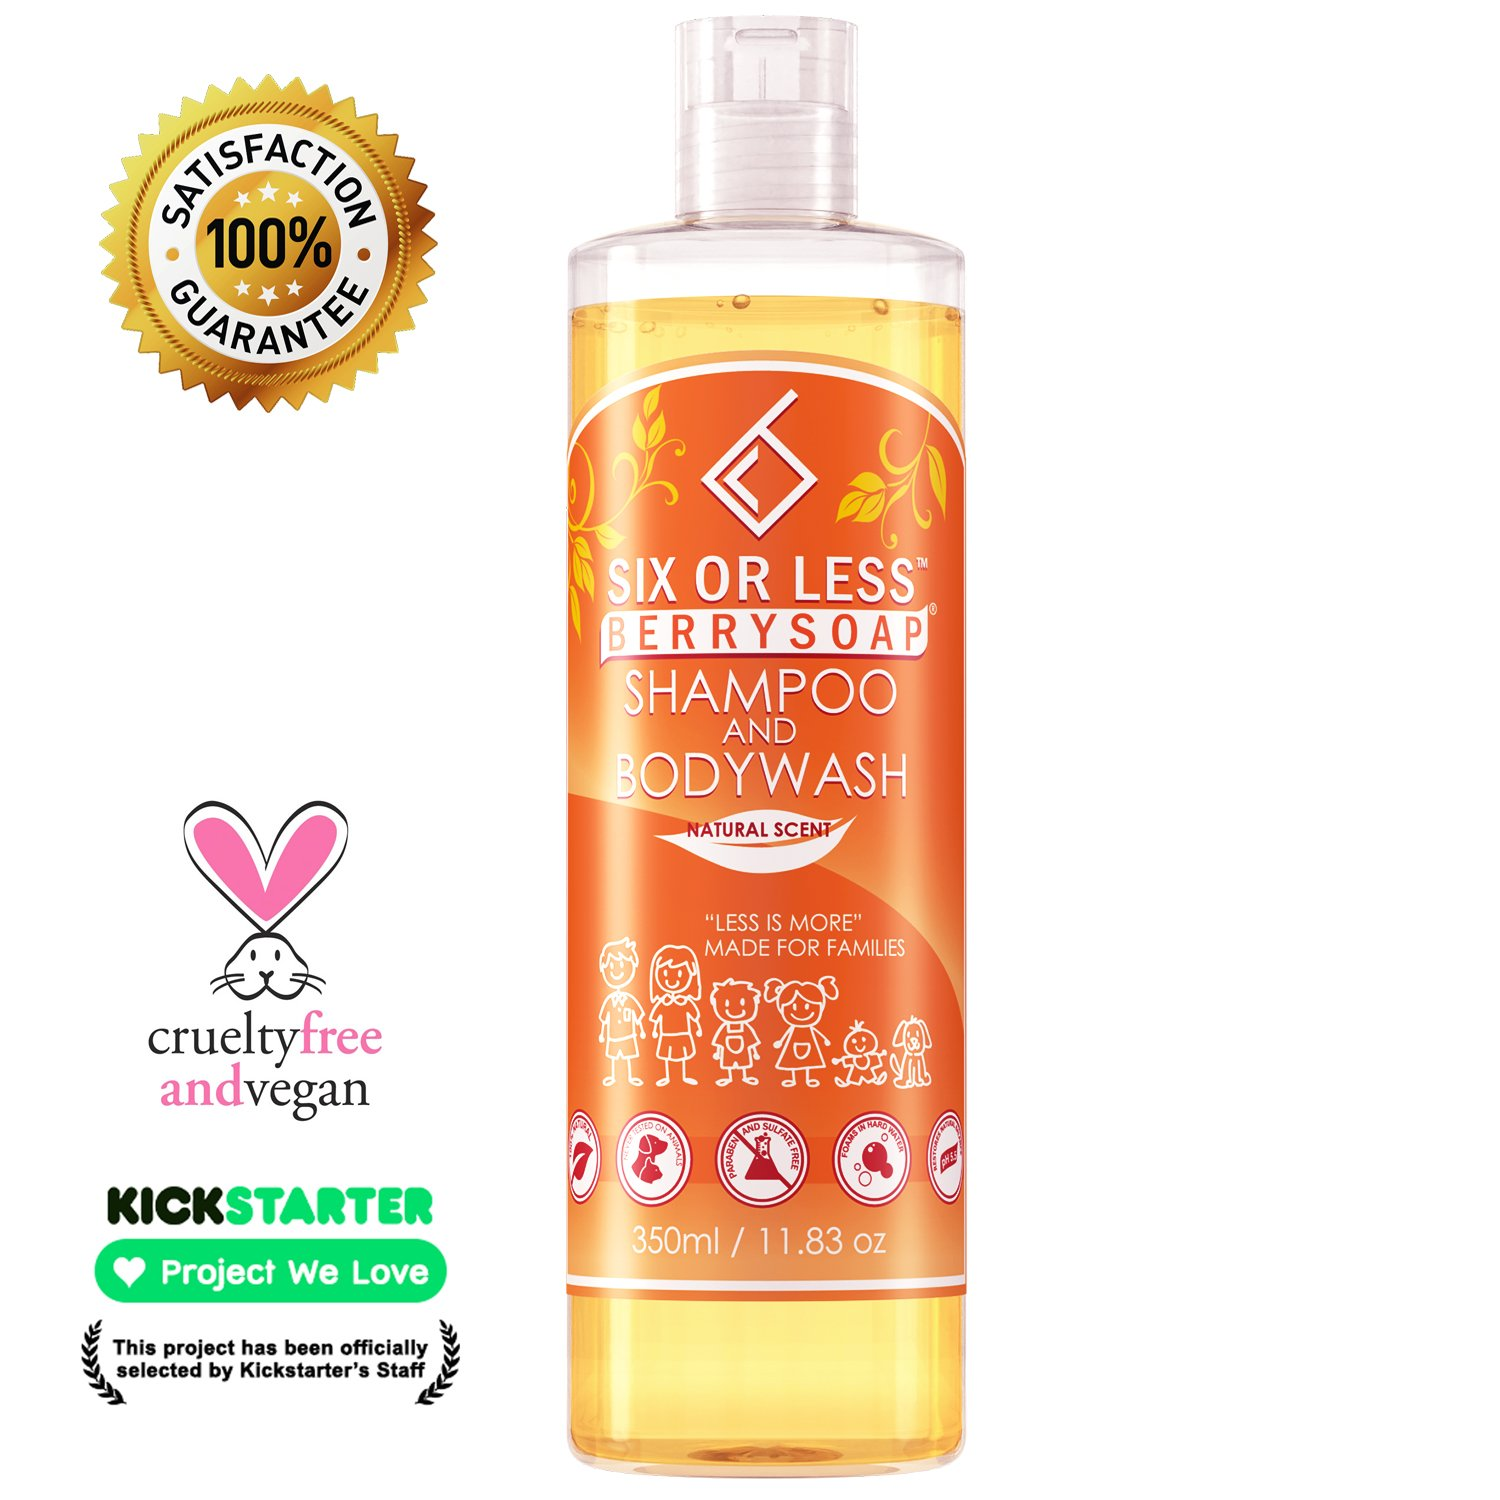 Six or Less Berrysoap Natural 2 in 1 Baby Shampoo & Body Wash, Only 6 Ingredients, Chemical-Free, Dye, Paraben, Gluten, Sulfate Free, Vegan Eczema Friendly Soap, Created by a Doctor, 14 Oz Bottle